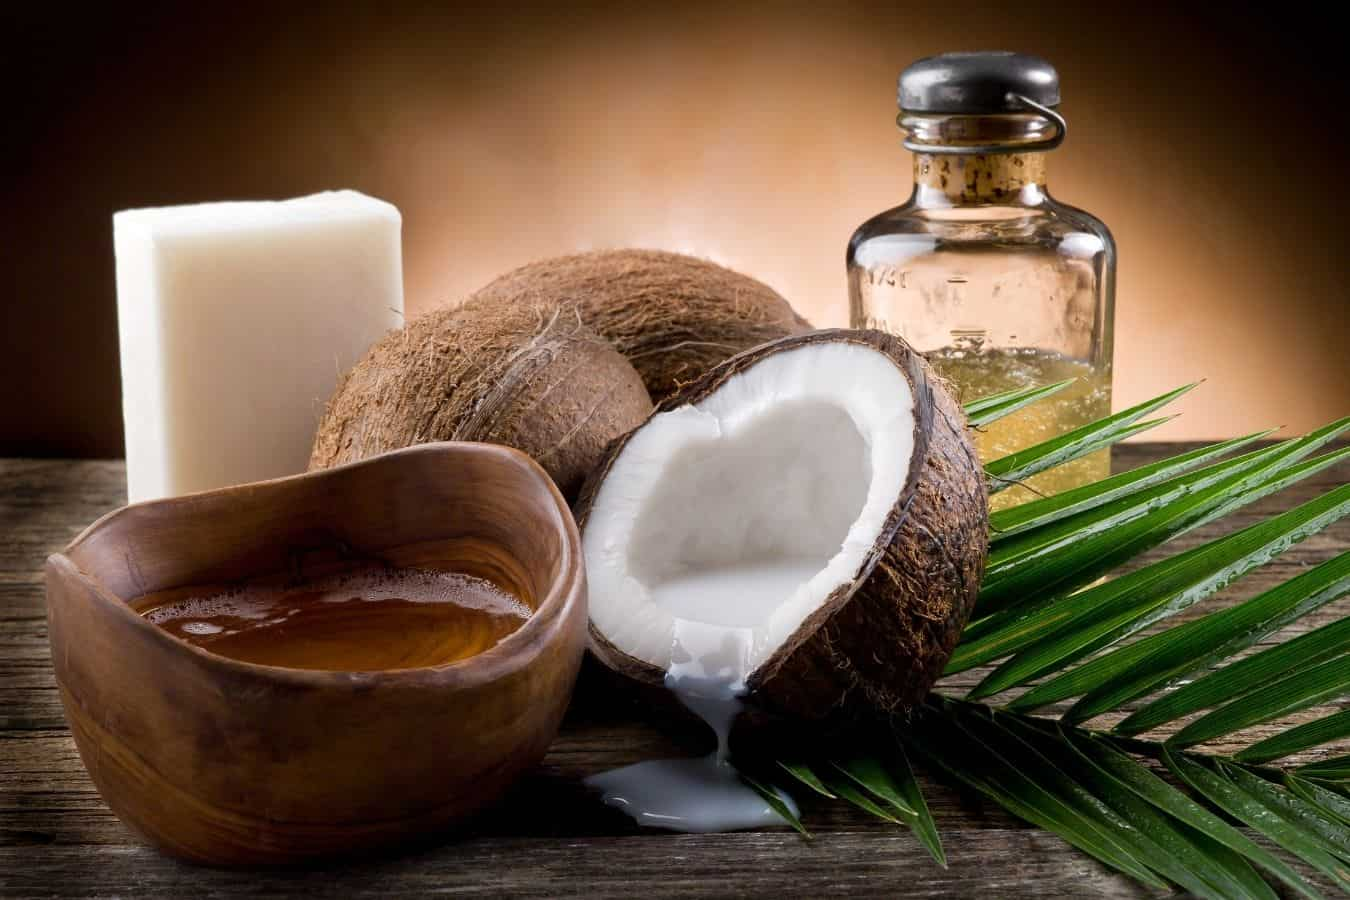 How To Use Coconut Oil For Hair Before Bleaching